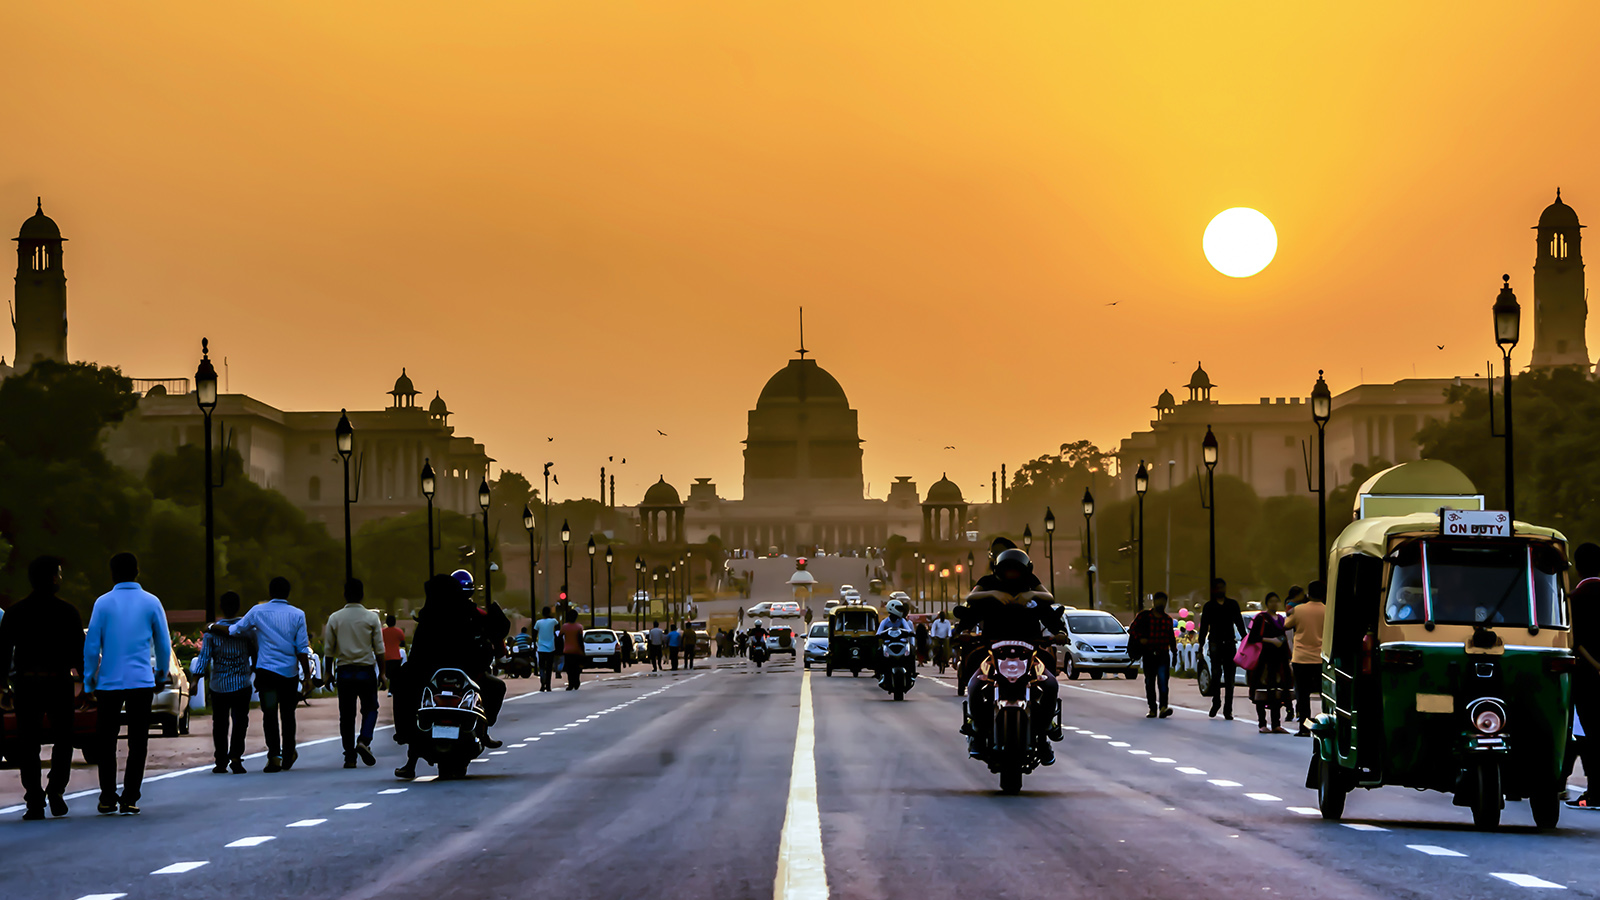 The Rashtrapati Bhavan during sunset time, India.